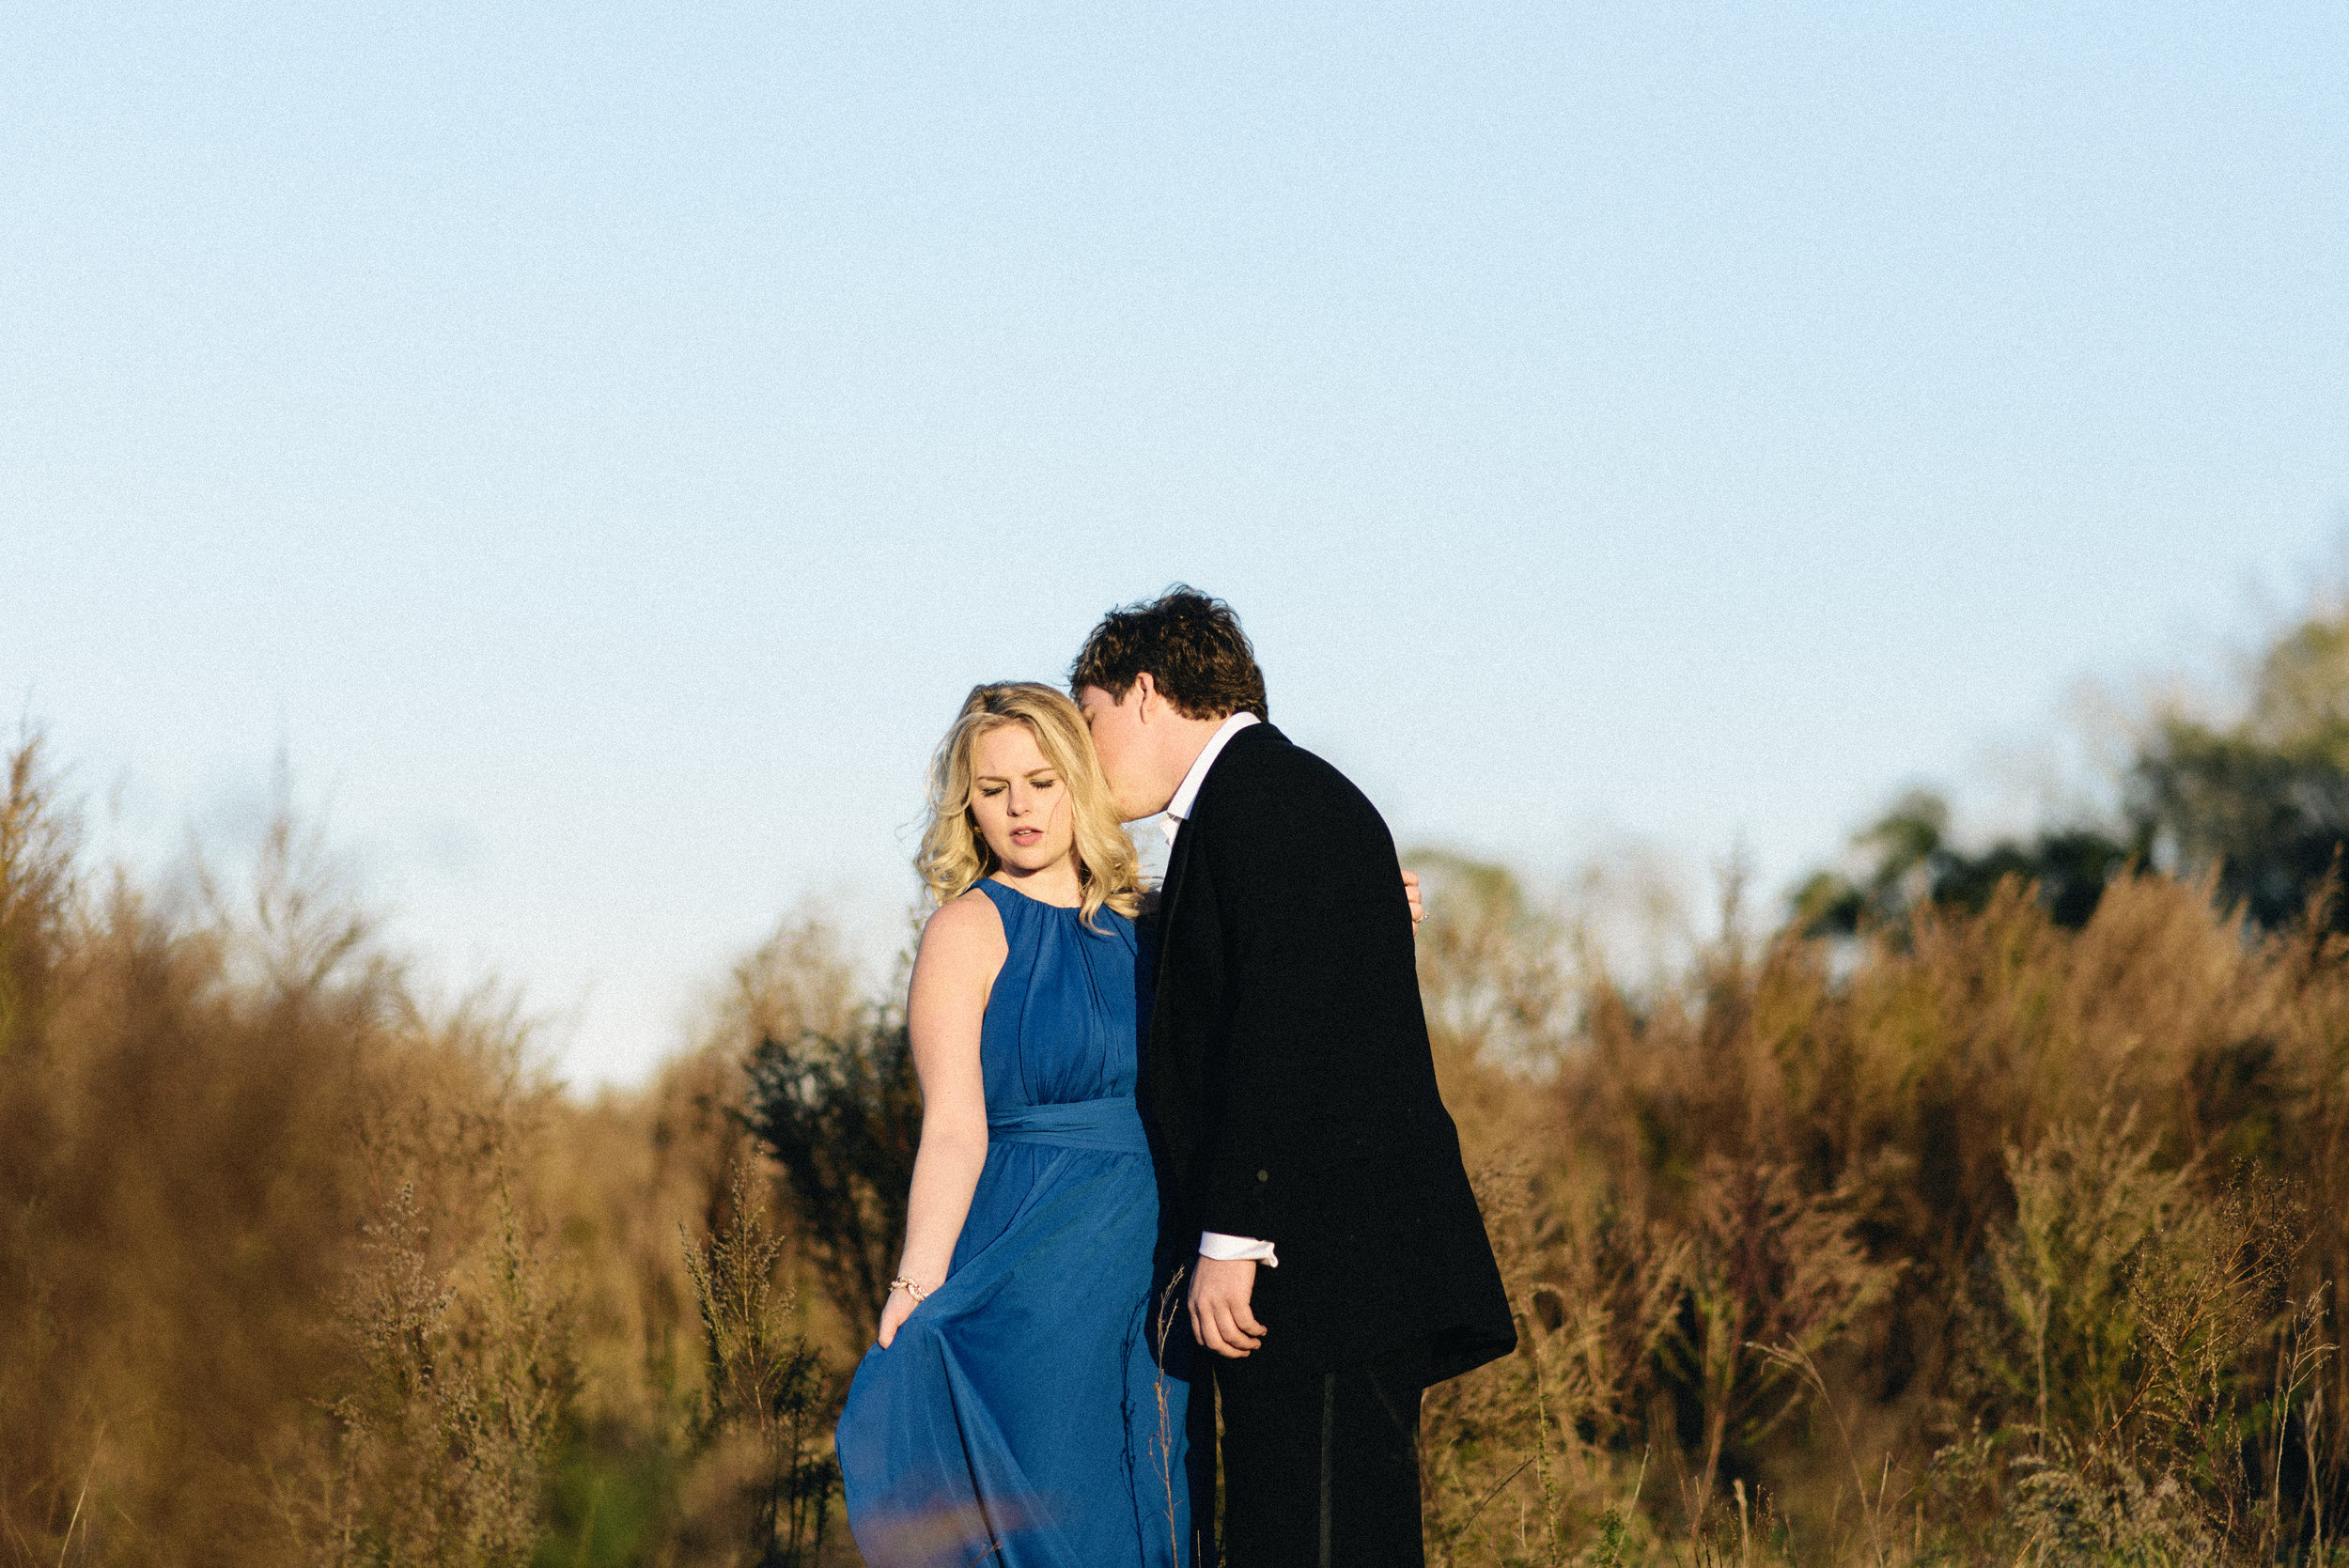 savannah-engagement-photographer-m-newsom-photography-meghan-and-bennett-december-2015-engagement-session- (187 of 327).jpg